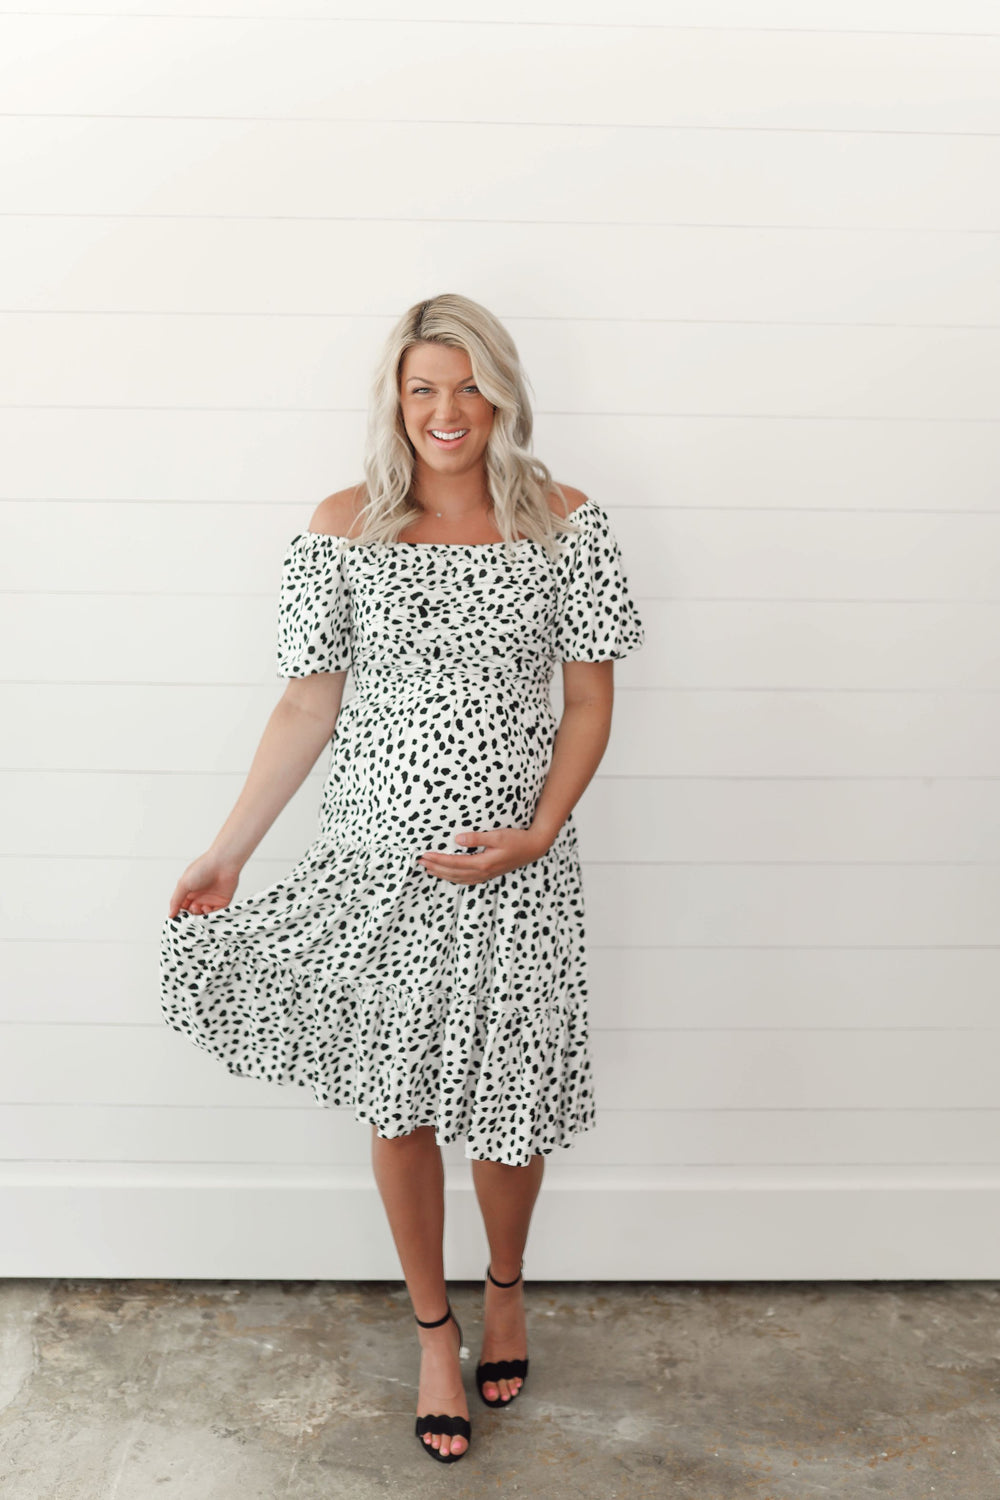 Black and White Spotted Midi Dress Inspired by Shelby Ditch